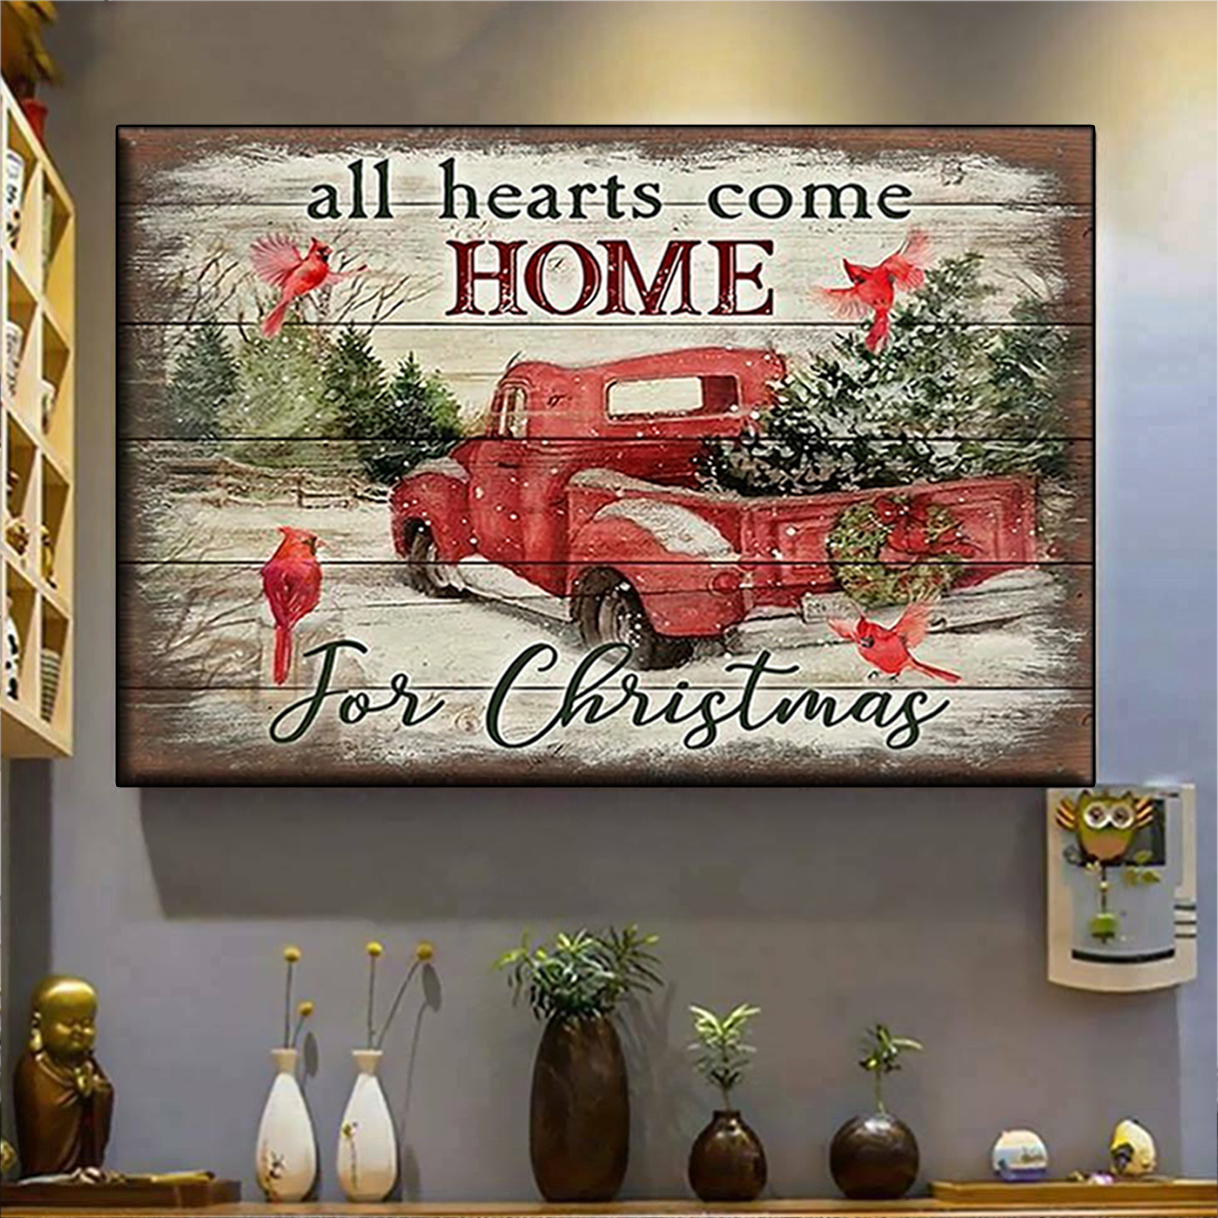 All hearts come home for christmas canvas prints large